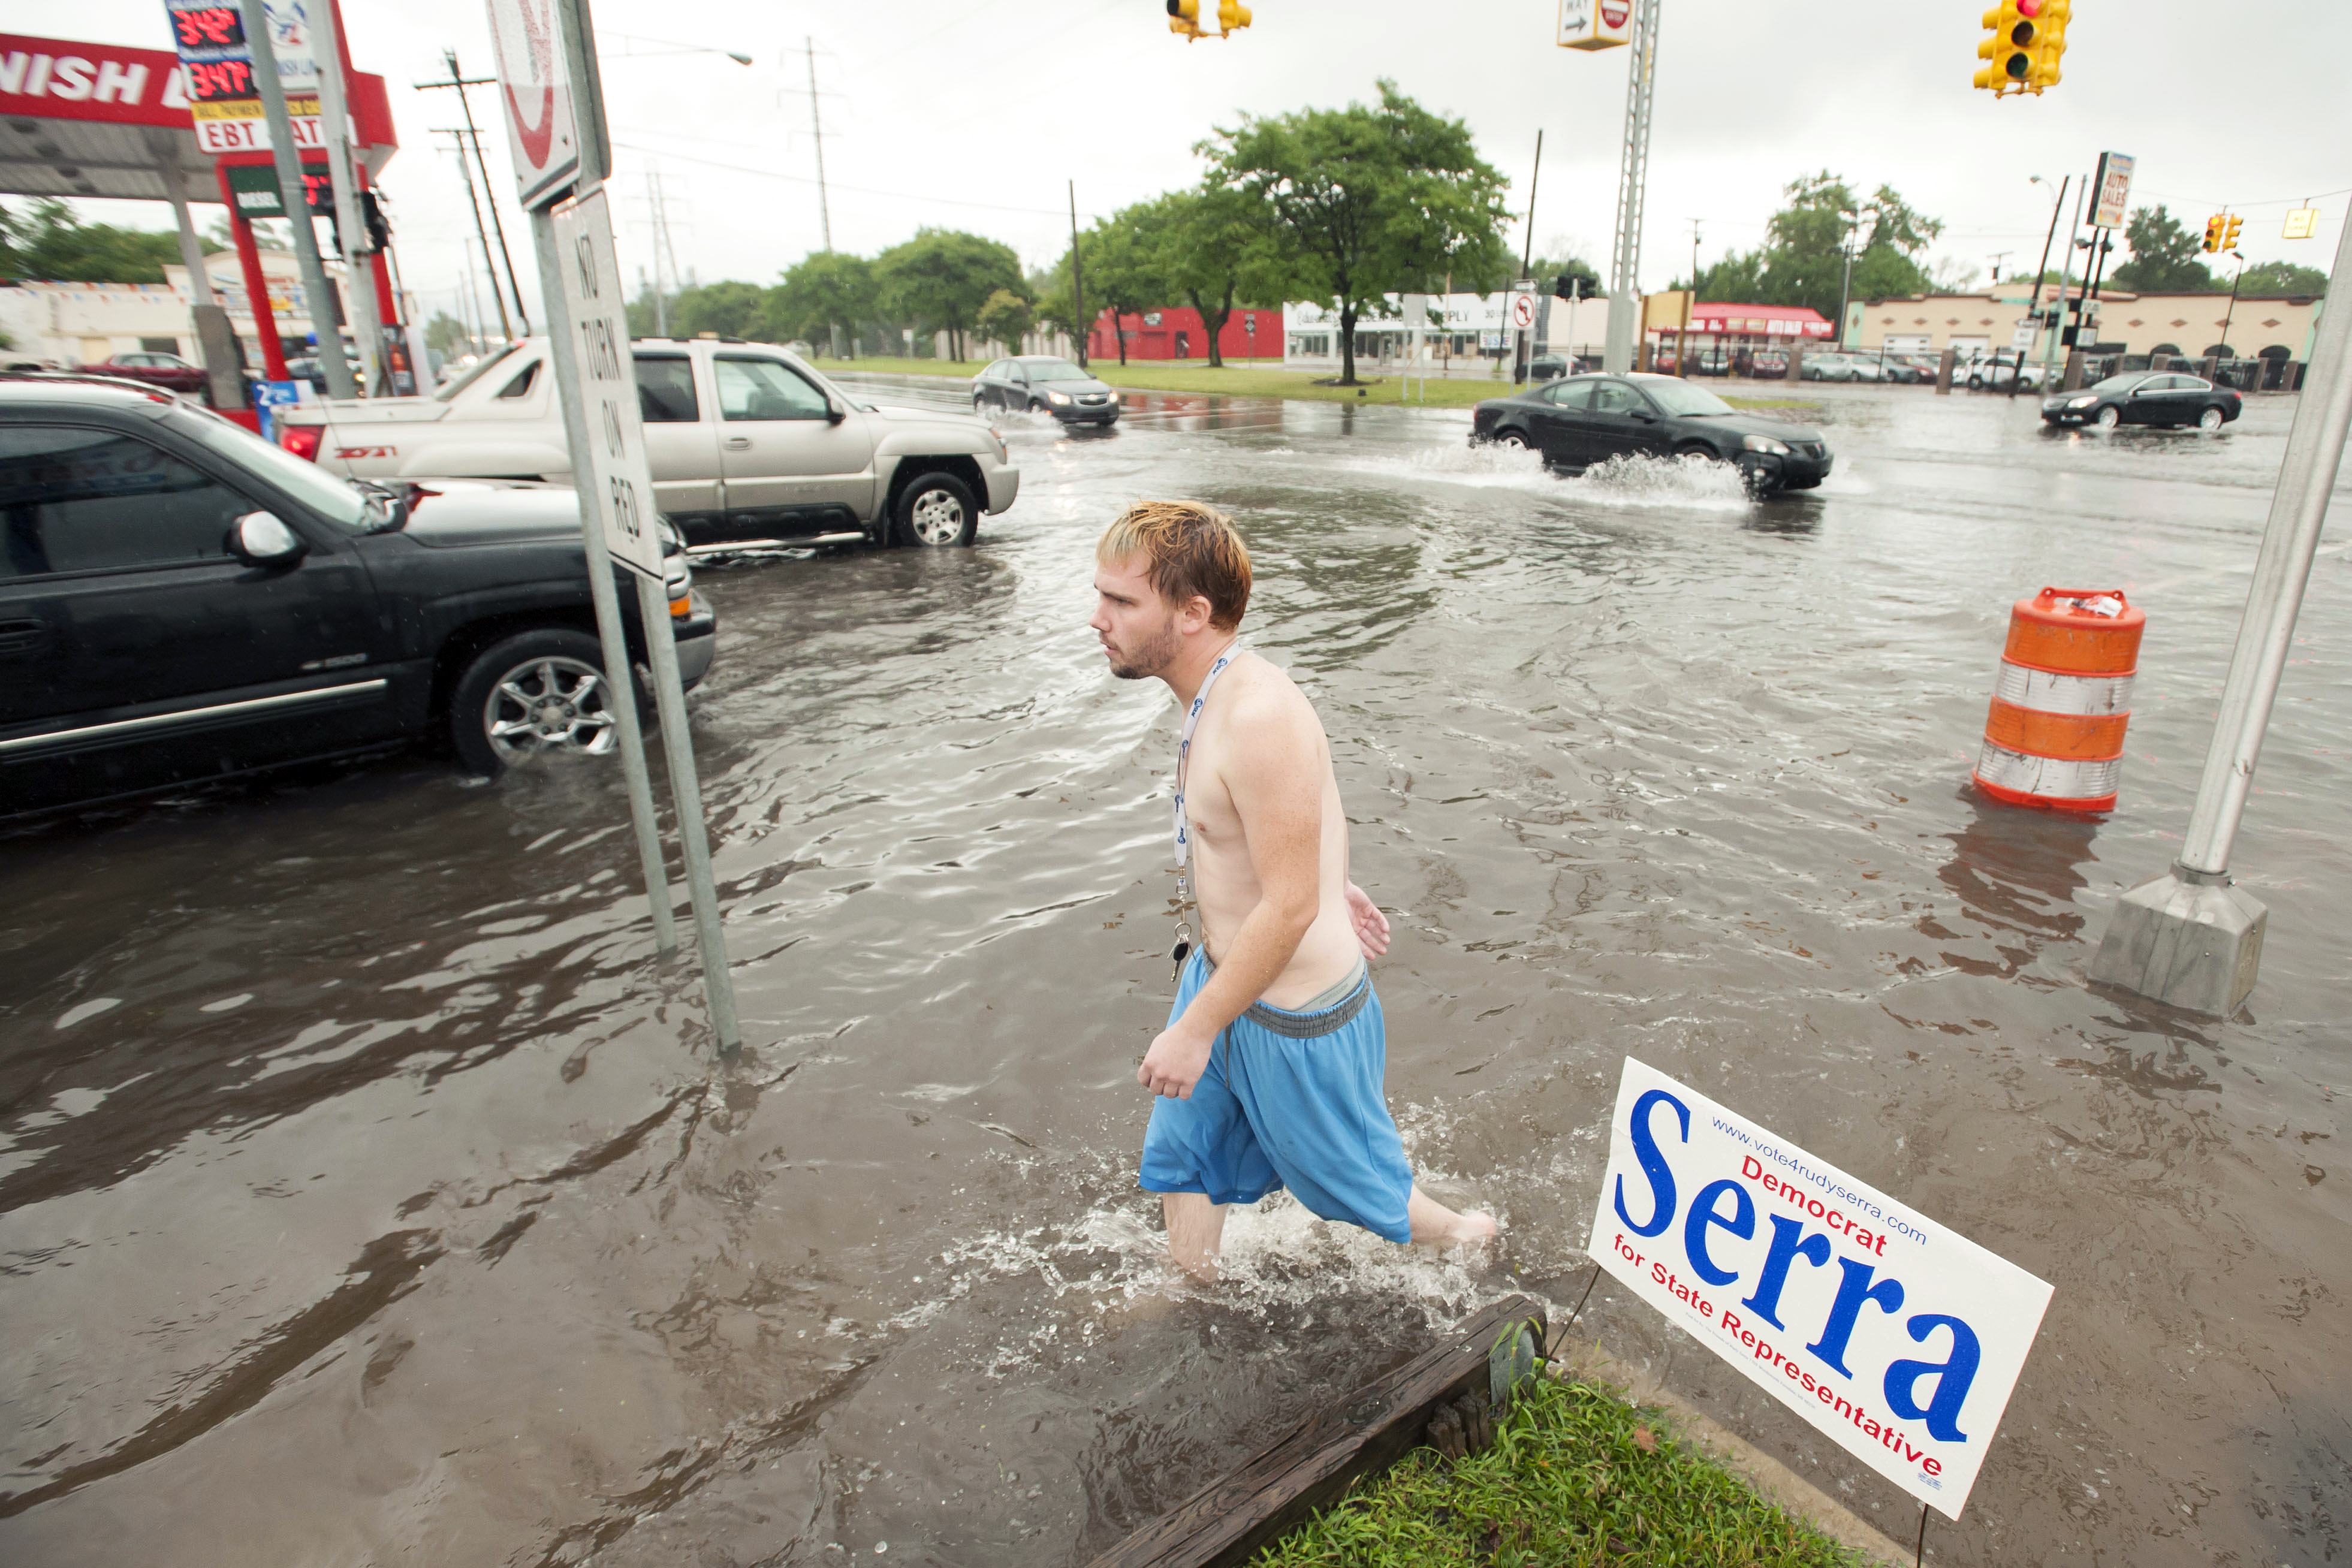 Joe Snyder, of Warren, Mich., walks through the flooded streets of Detroit on Aug. 11, 2014. Fearing more motorists could become stranded a day after a storm dumped more than 6 inches of rain in some places in and around Detroit, the state warned commuters against driving in affected areas Tuesday morning.